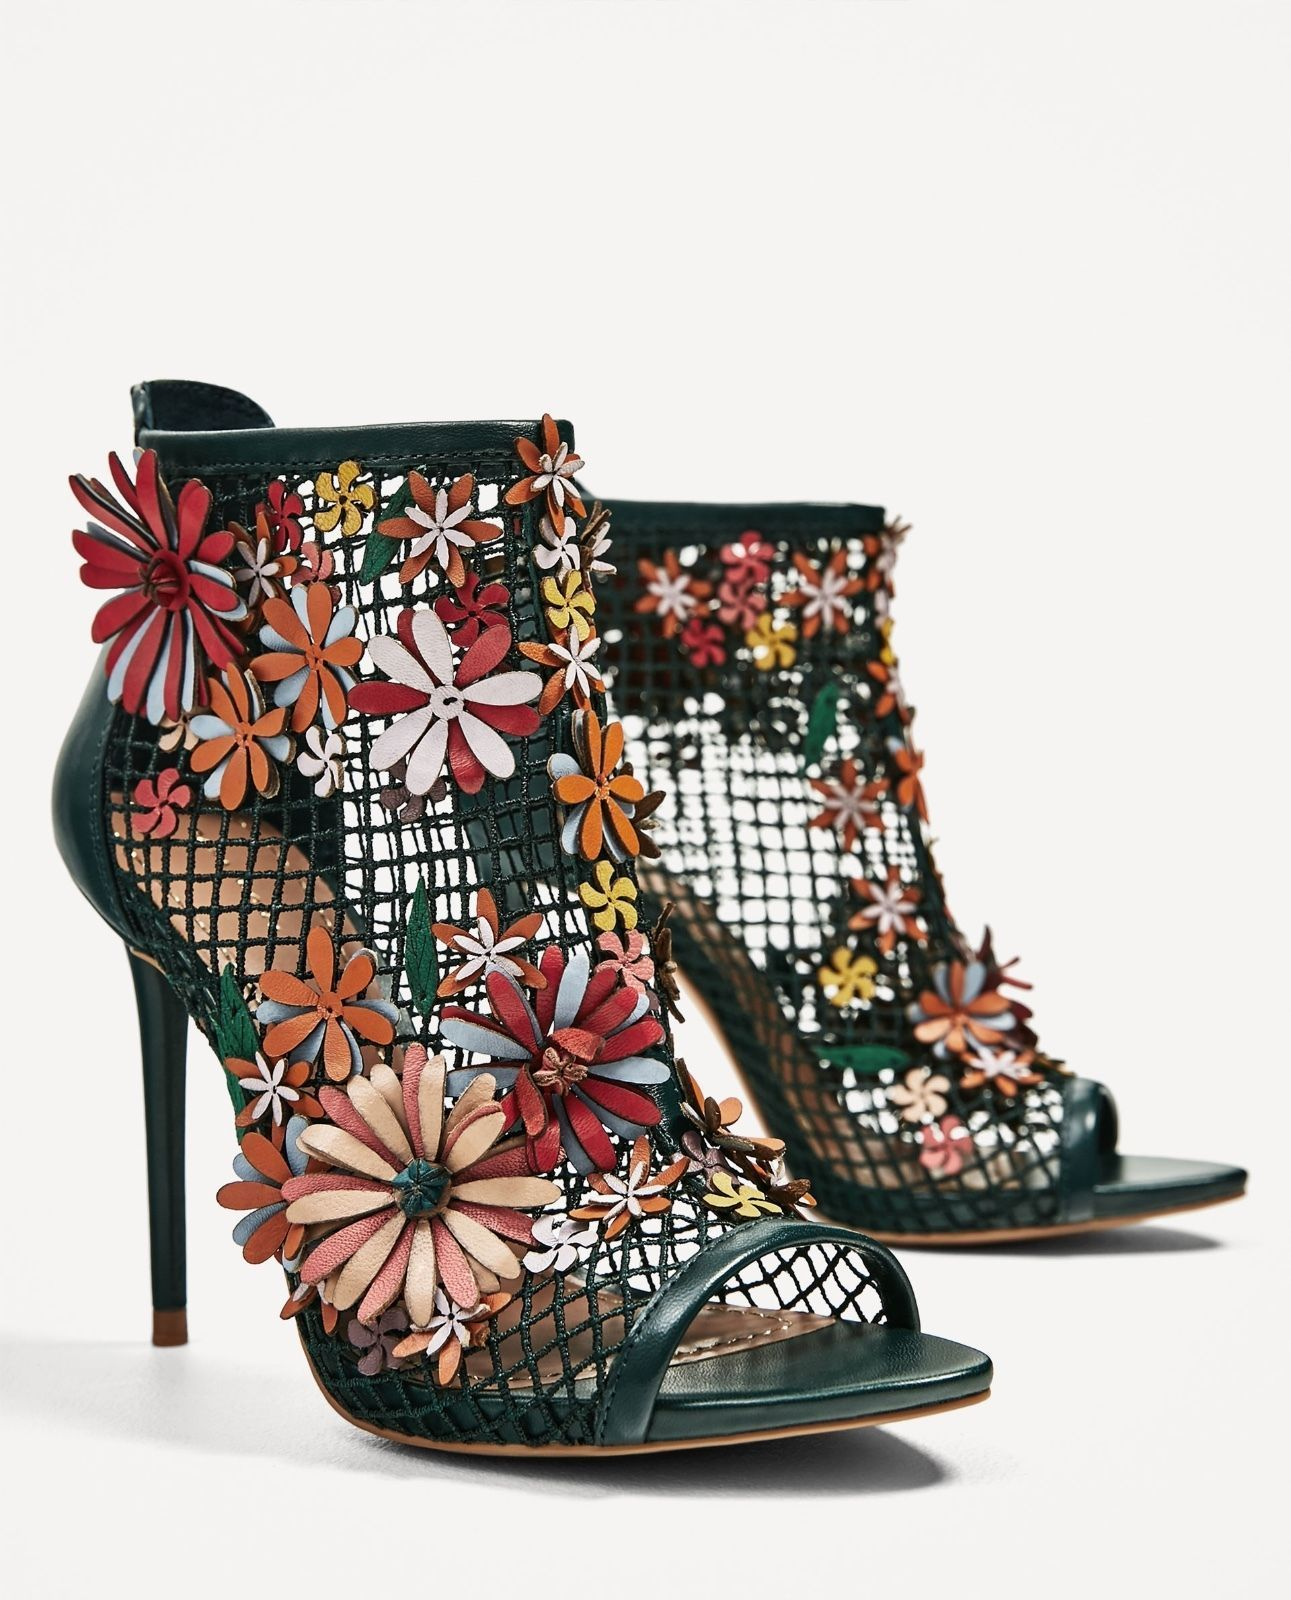 c0c90ae7a6 Zara Ankle Boots Sandals High Heel Floral Mesh Fishnet Multicolor Leather  Ss17